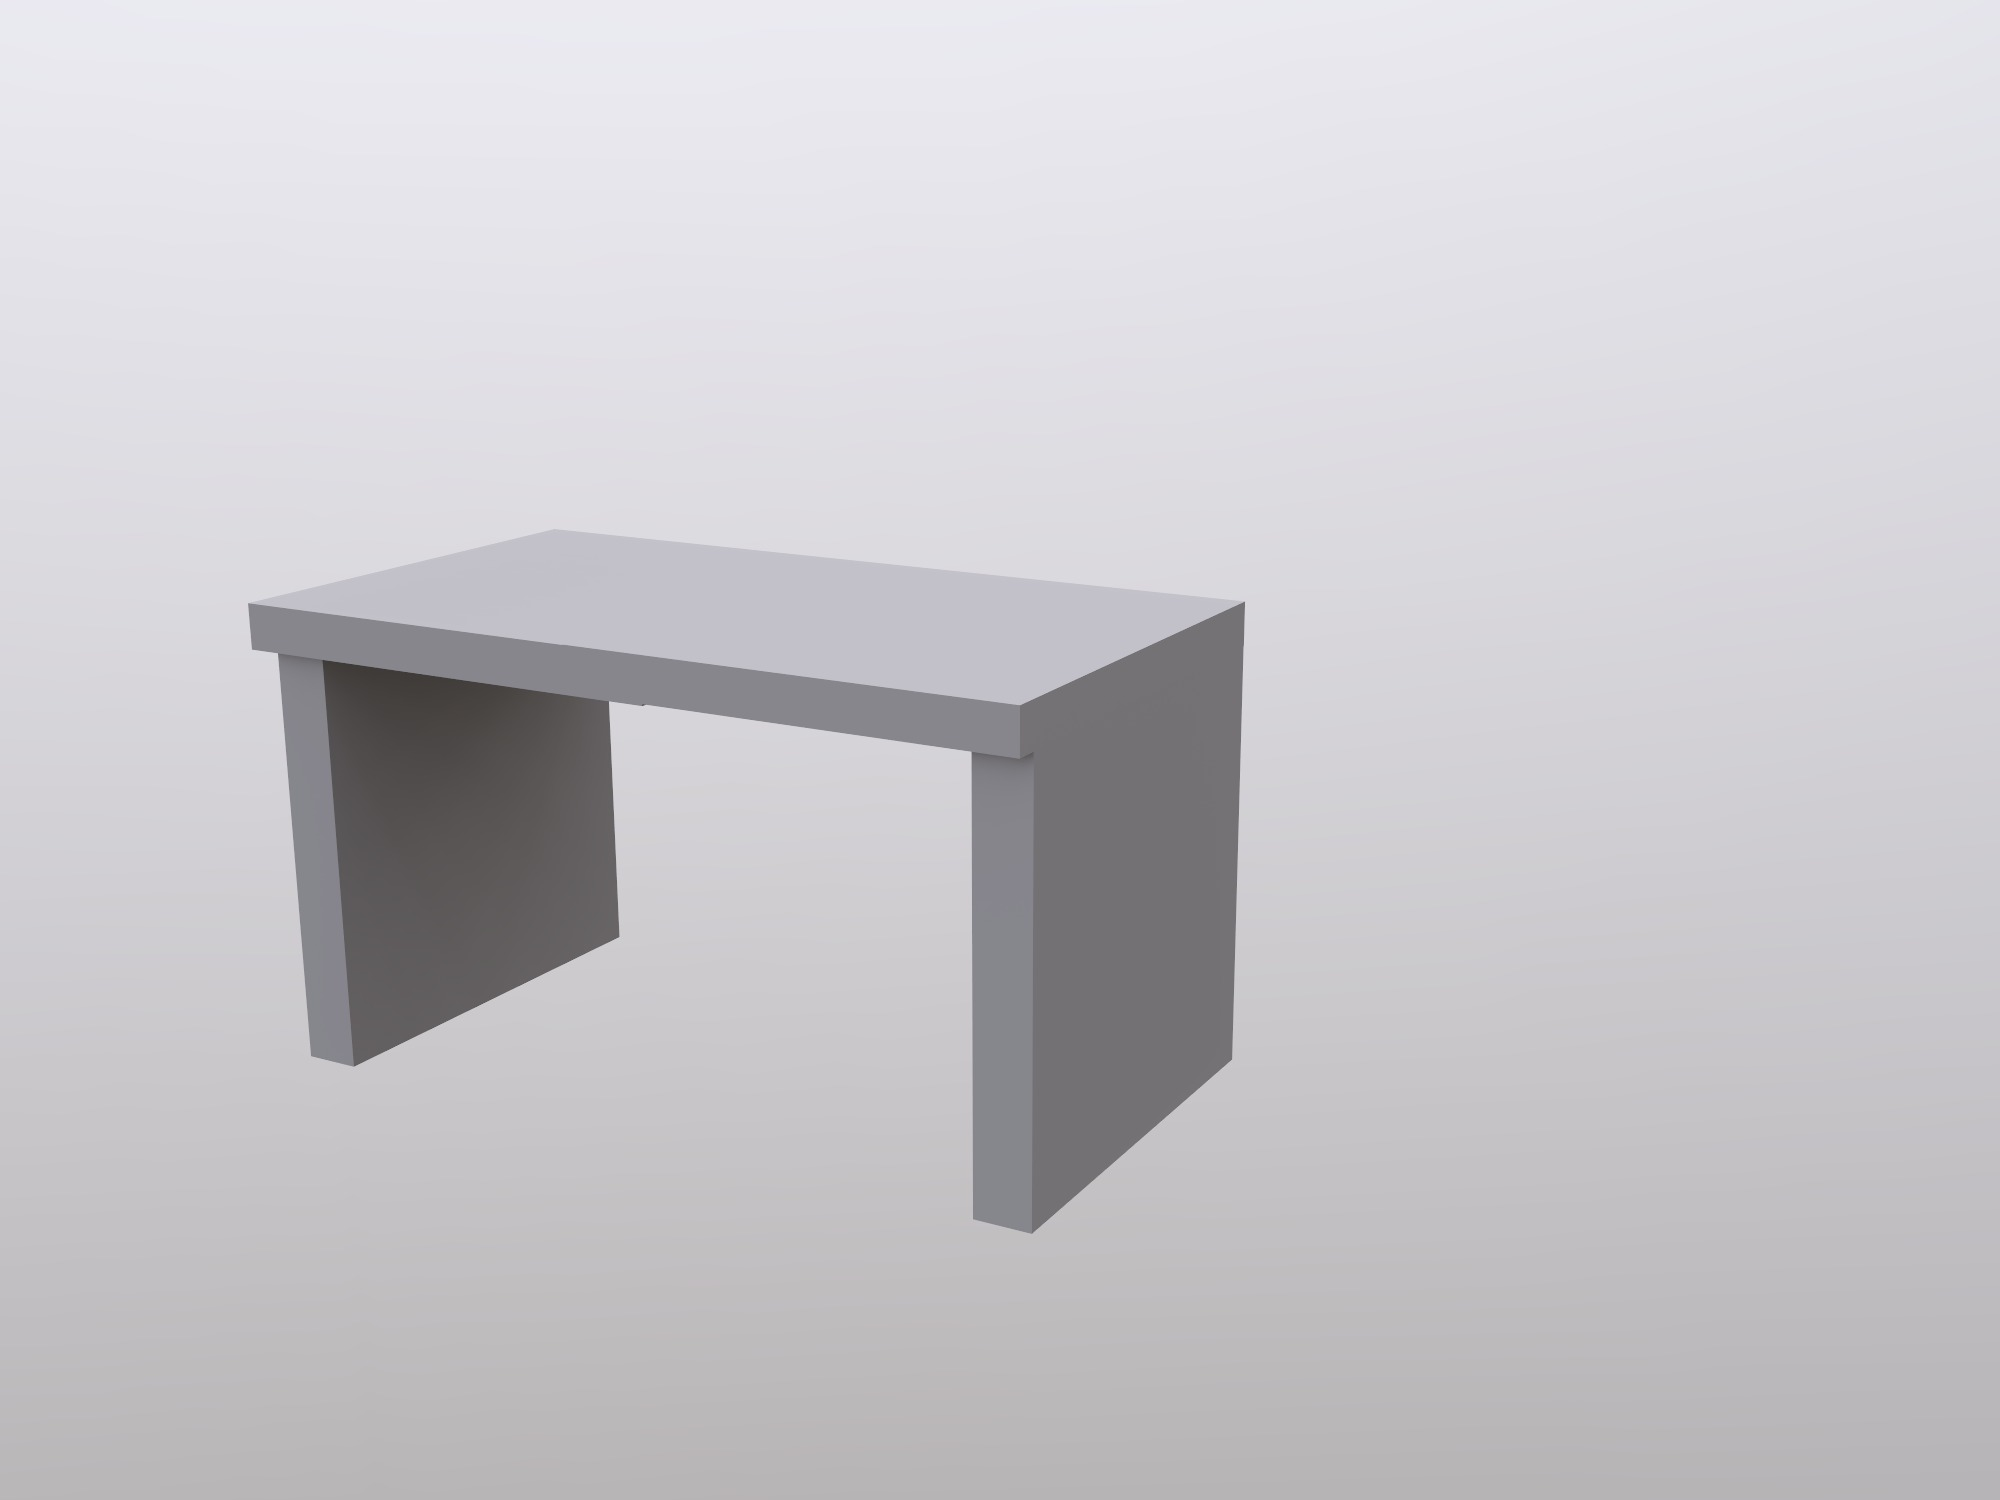 Table - 3D design by 380348 on Dec 11, 2018